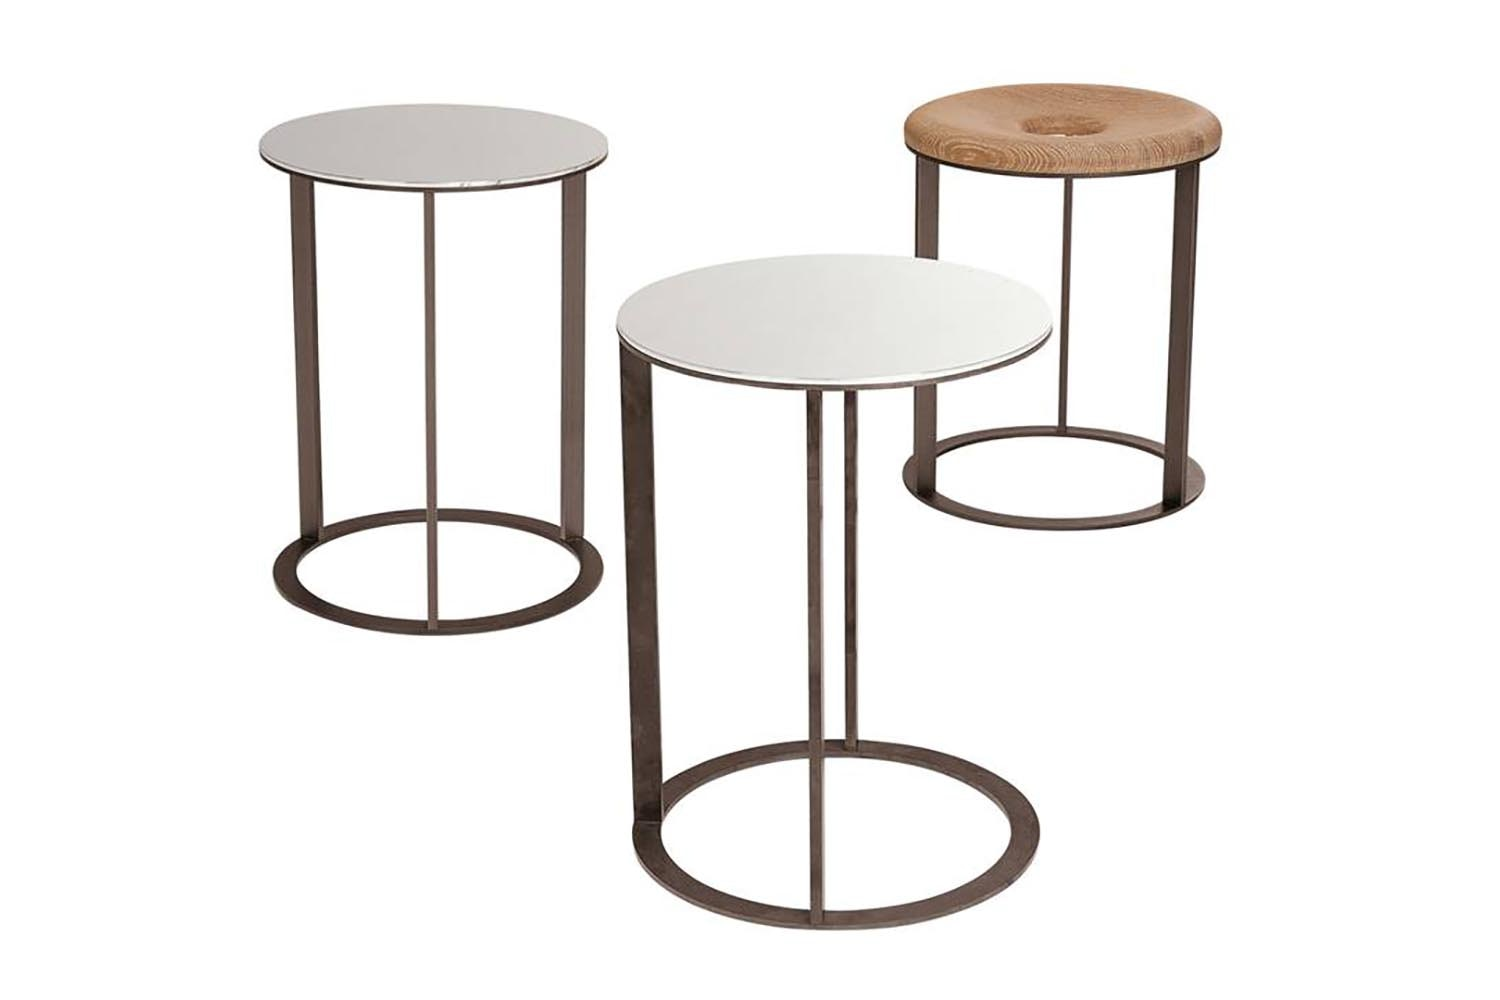 Elios Small Table by Antonio Citterio for Maxalto